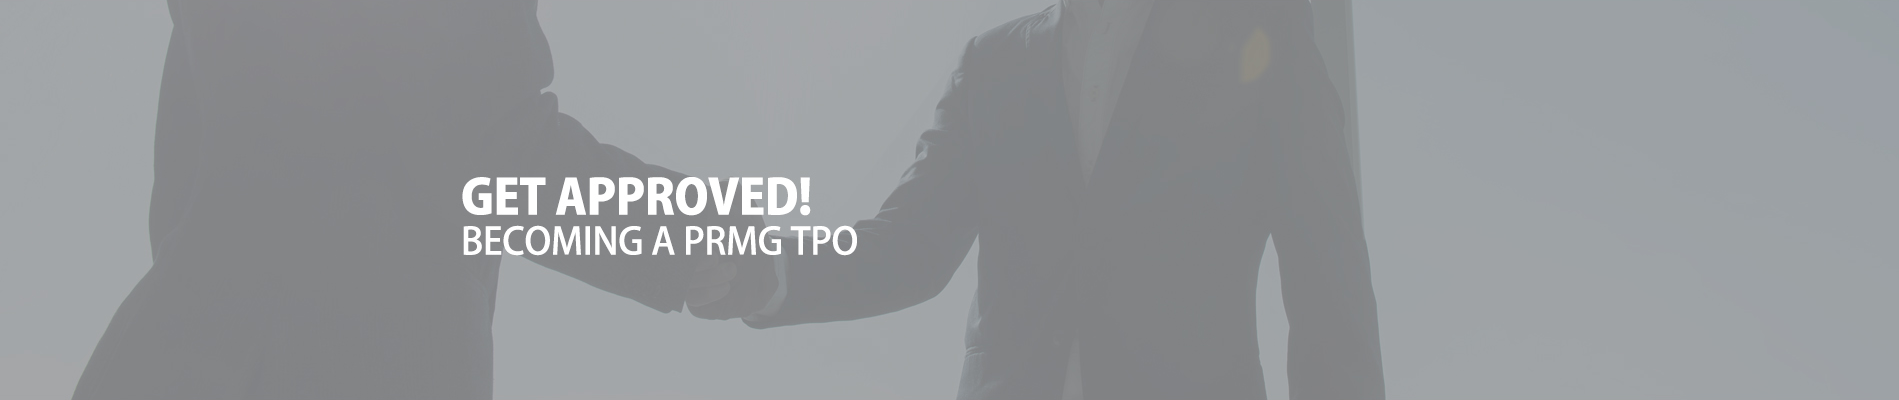 Grey Get Approved! Becoming a PRMG TPO image Banner